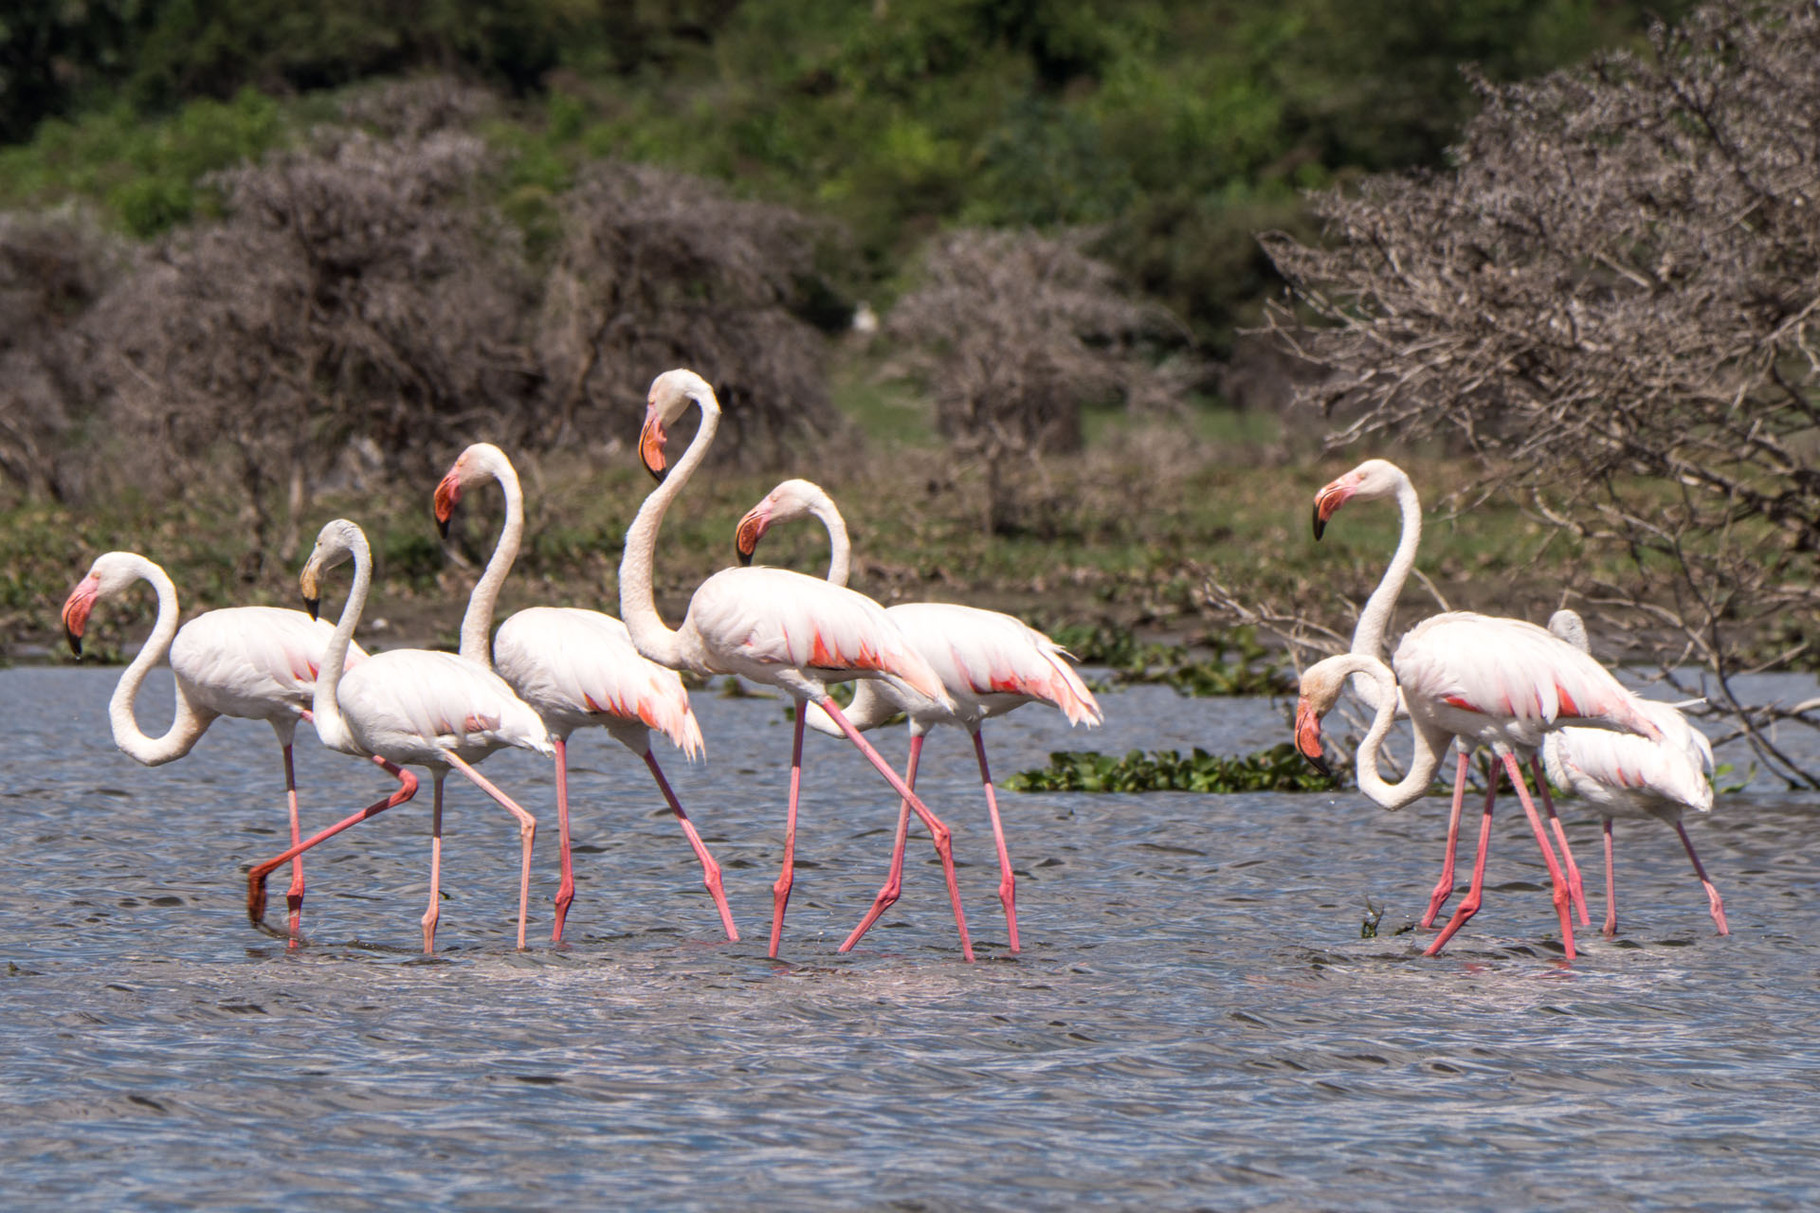 Flamingos [Lake Navaisha, Kenya, 2015]